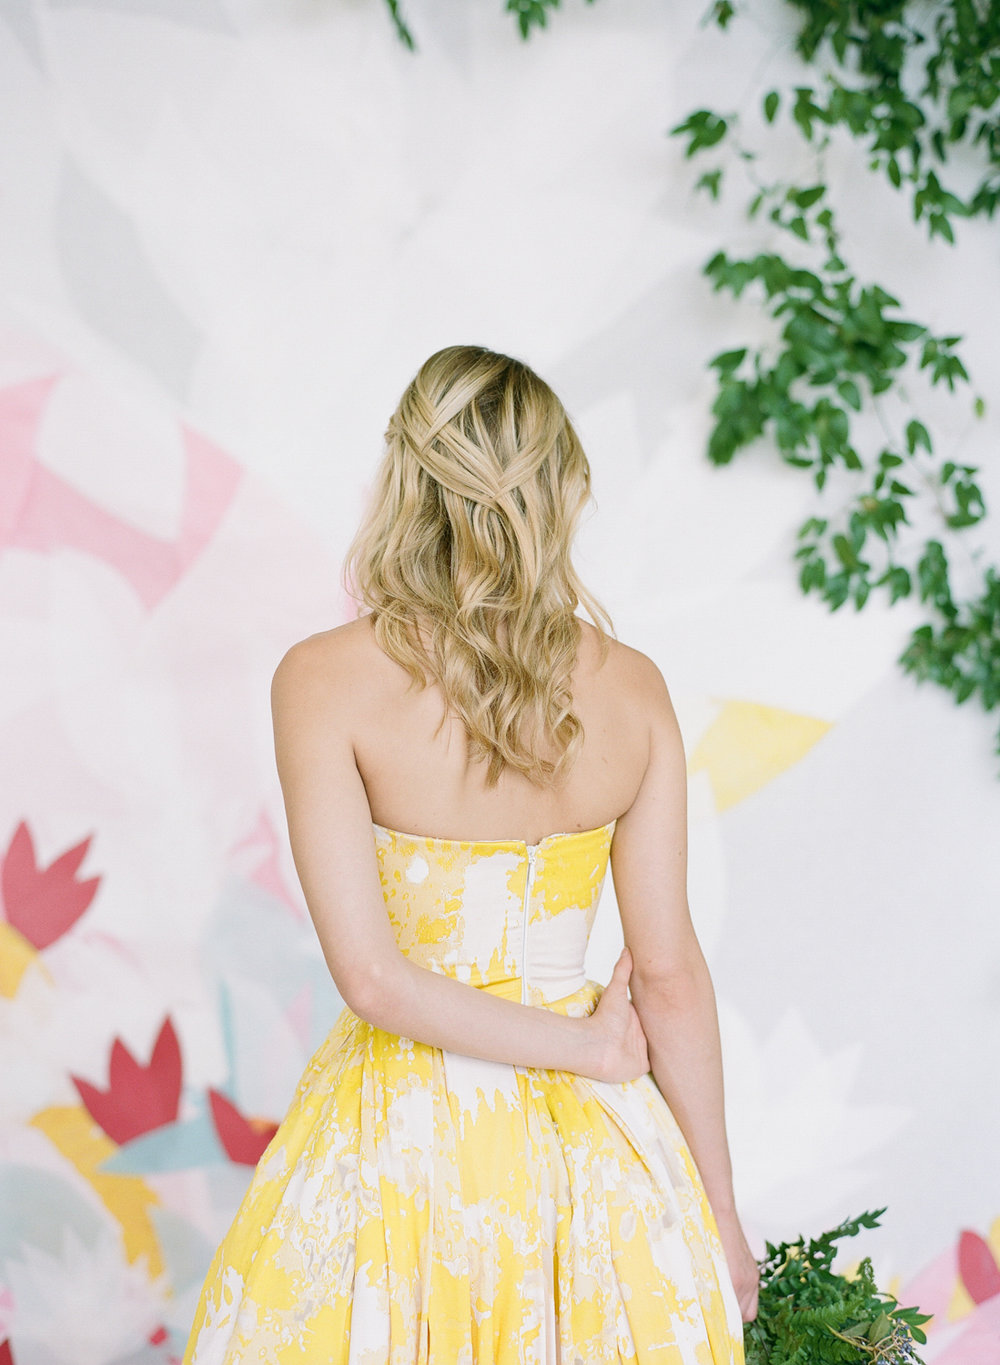 A bride in a colorful yellow wedding gown for a Flutter Magazine editorial spread; Sylvie Gil Photography